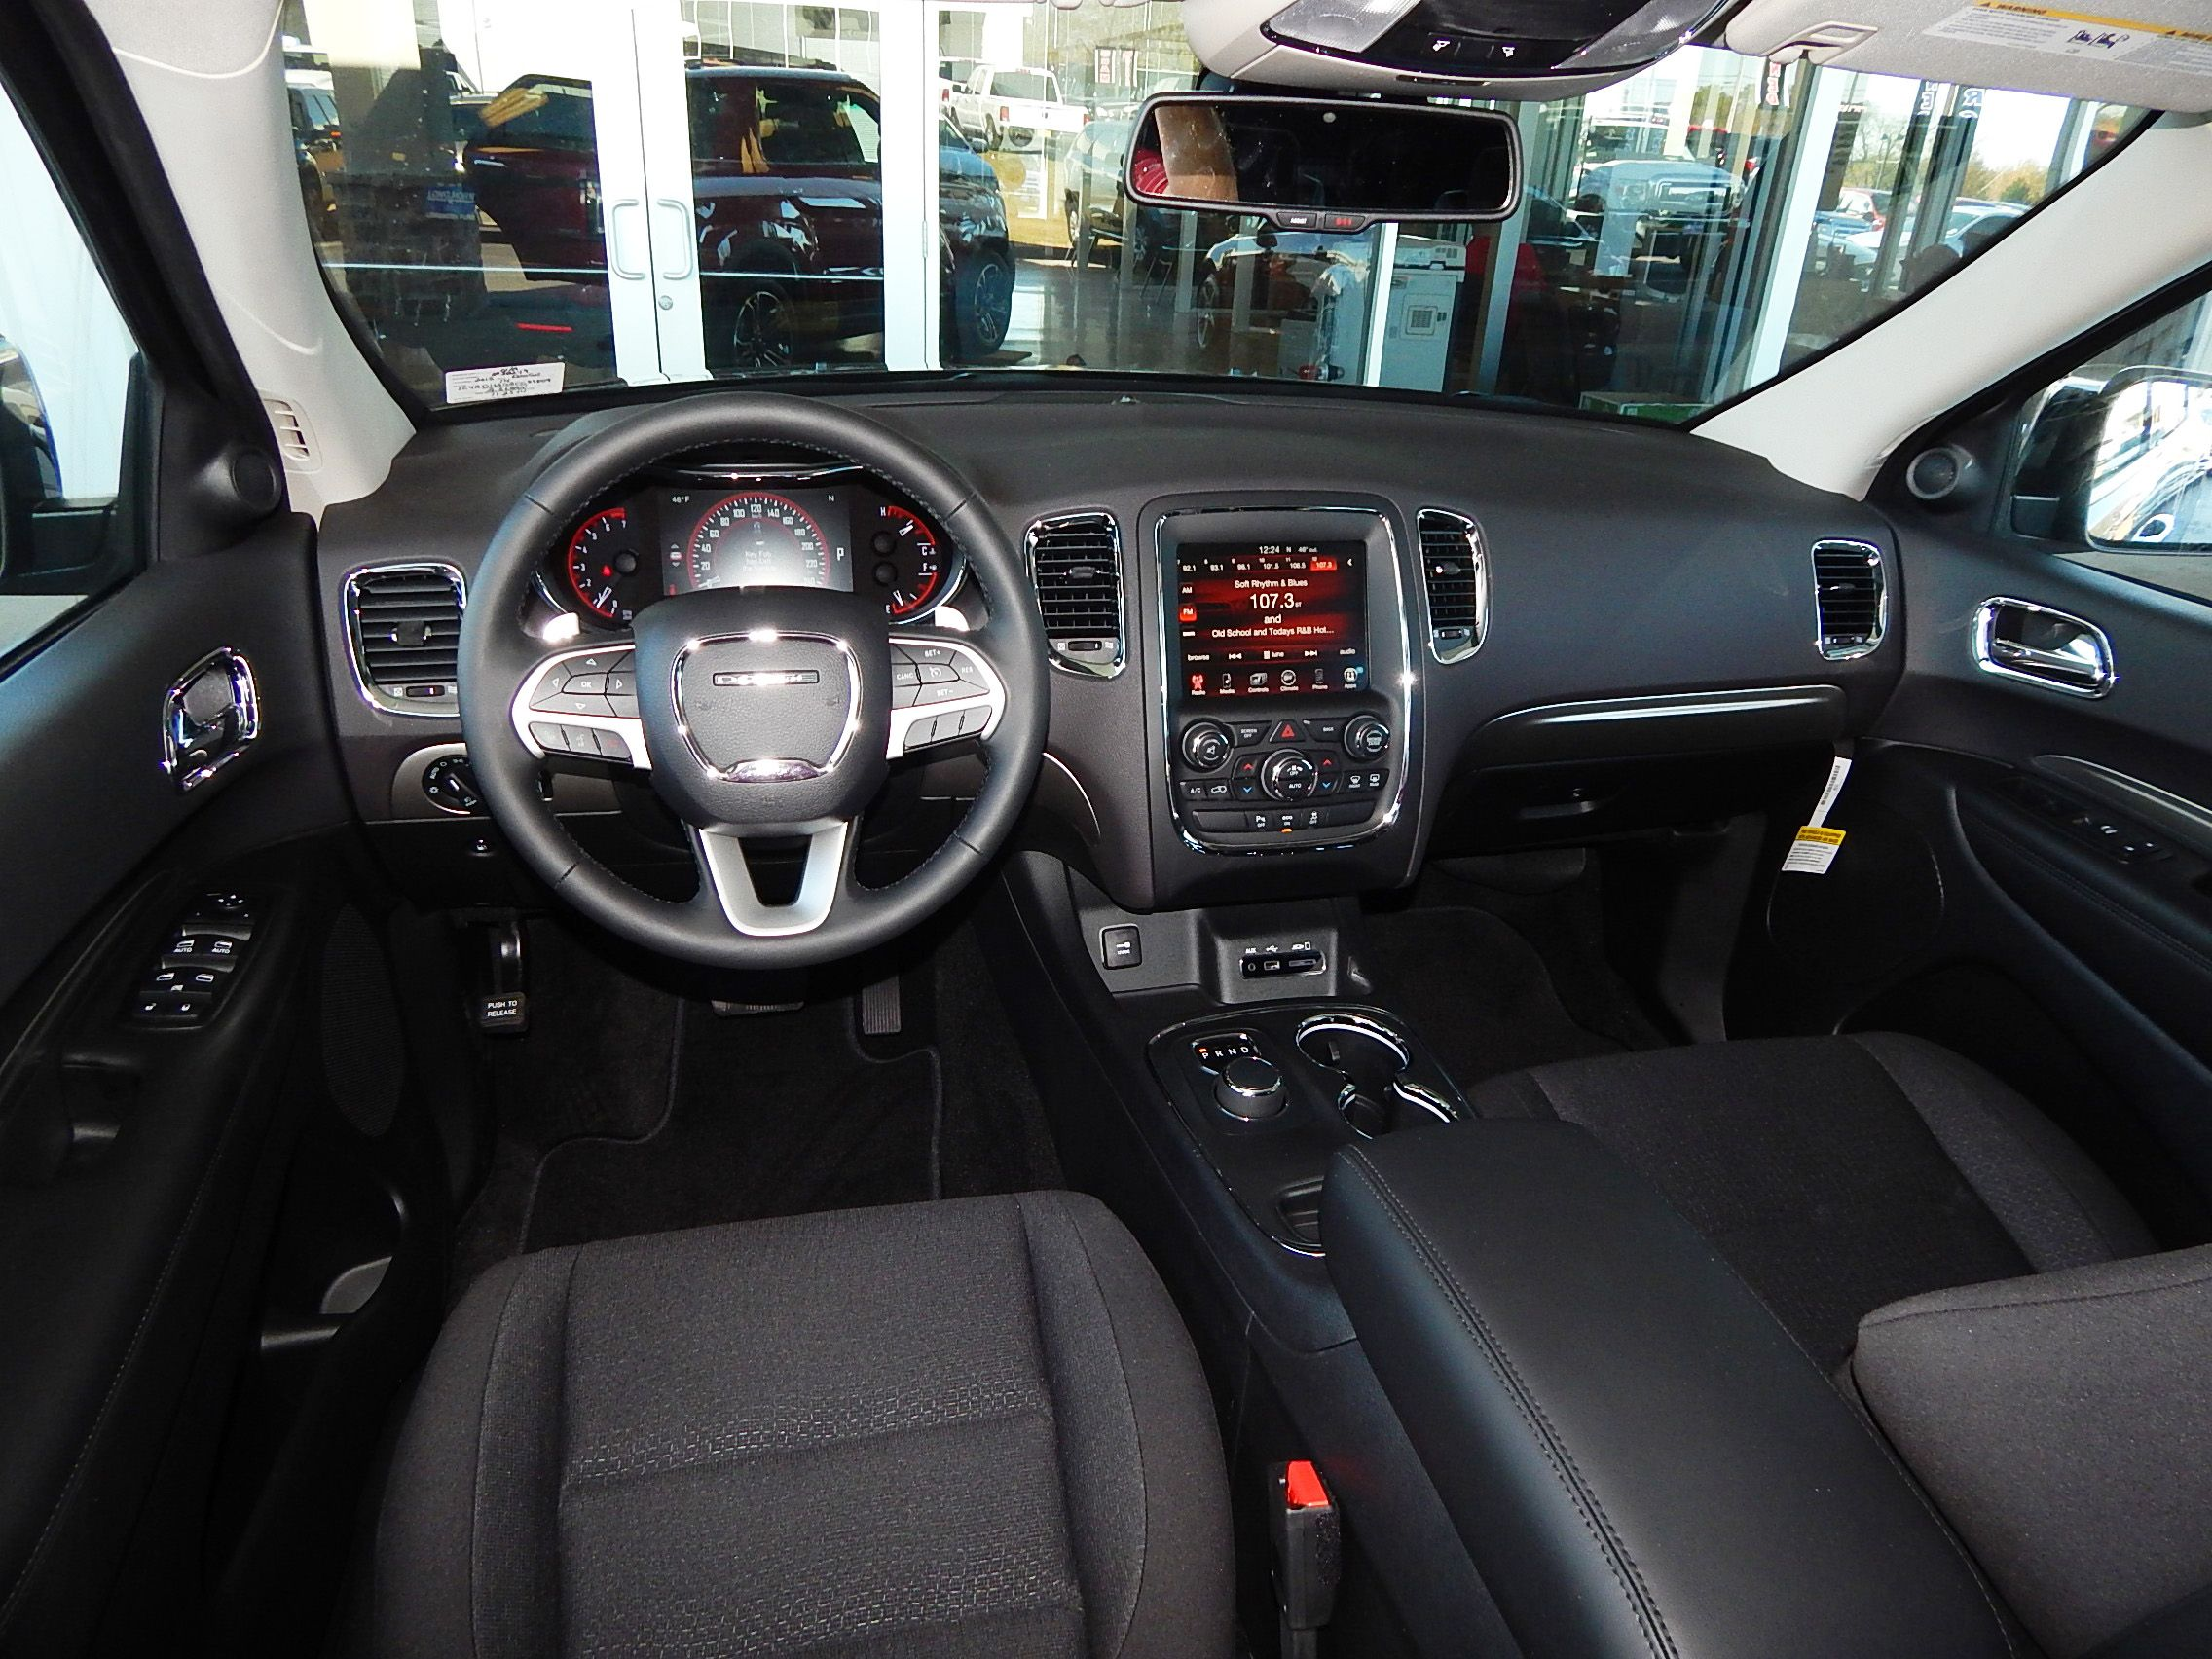 Dodge durango r t gets glorious red nappa leather seats corwin dodge blog pinterest dodge durango dodge and leather